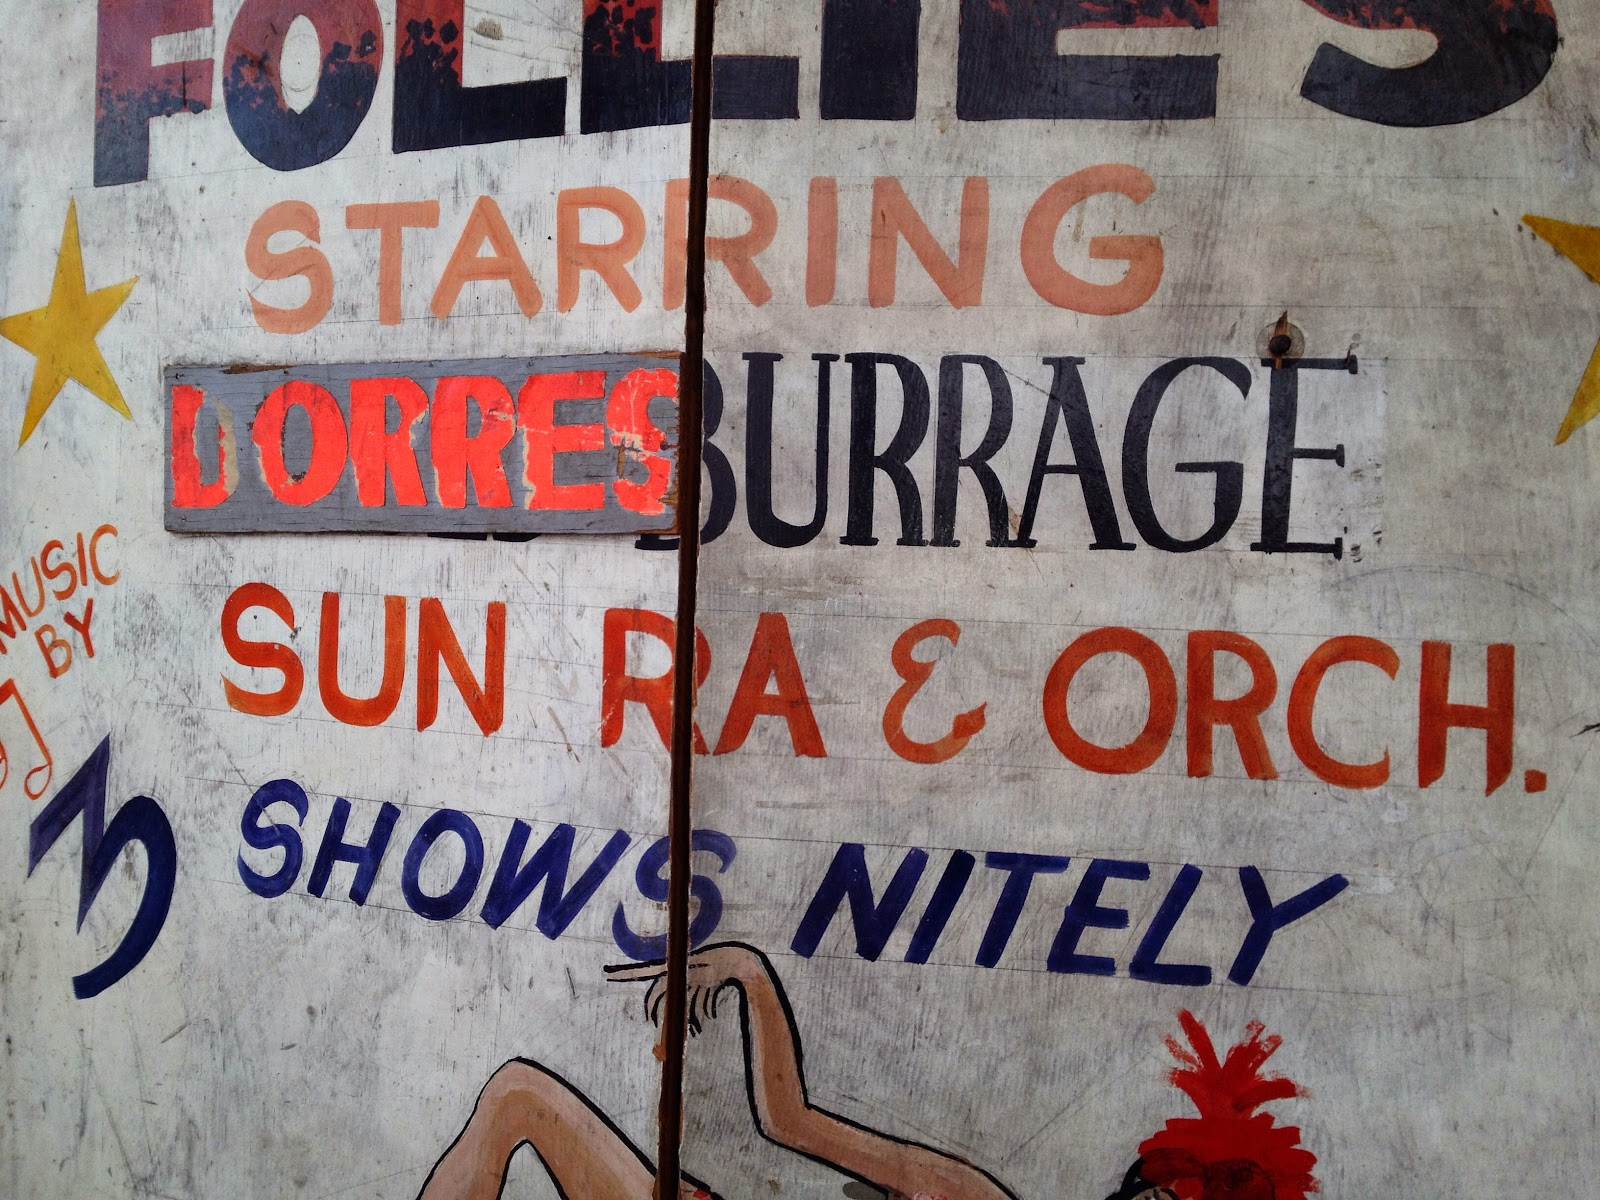 Follies Starring Lorres Burrage, SUN RA & Orch. 3 Shows Nitely